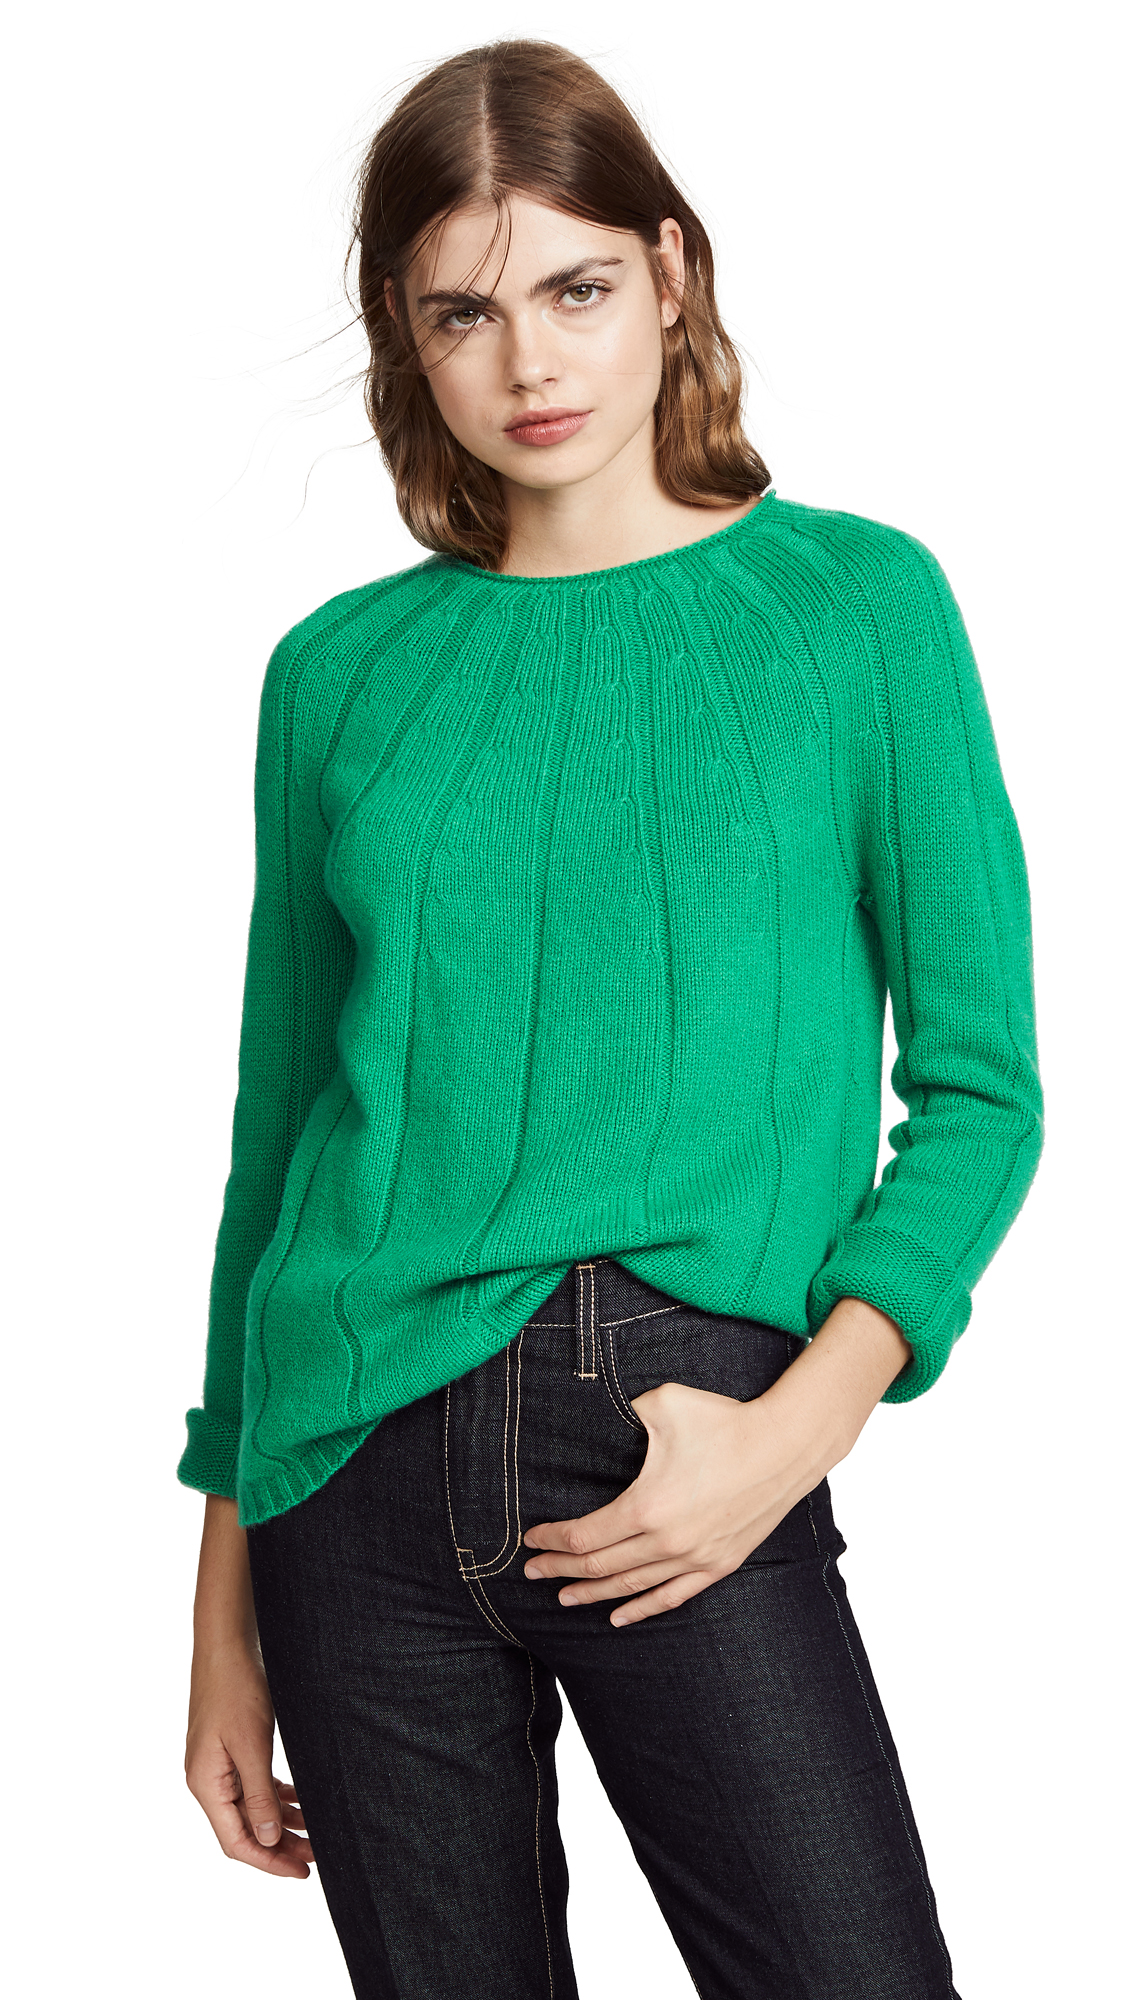 A.P.C. Clemence Sweater In Vert